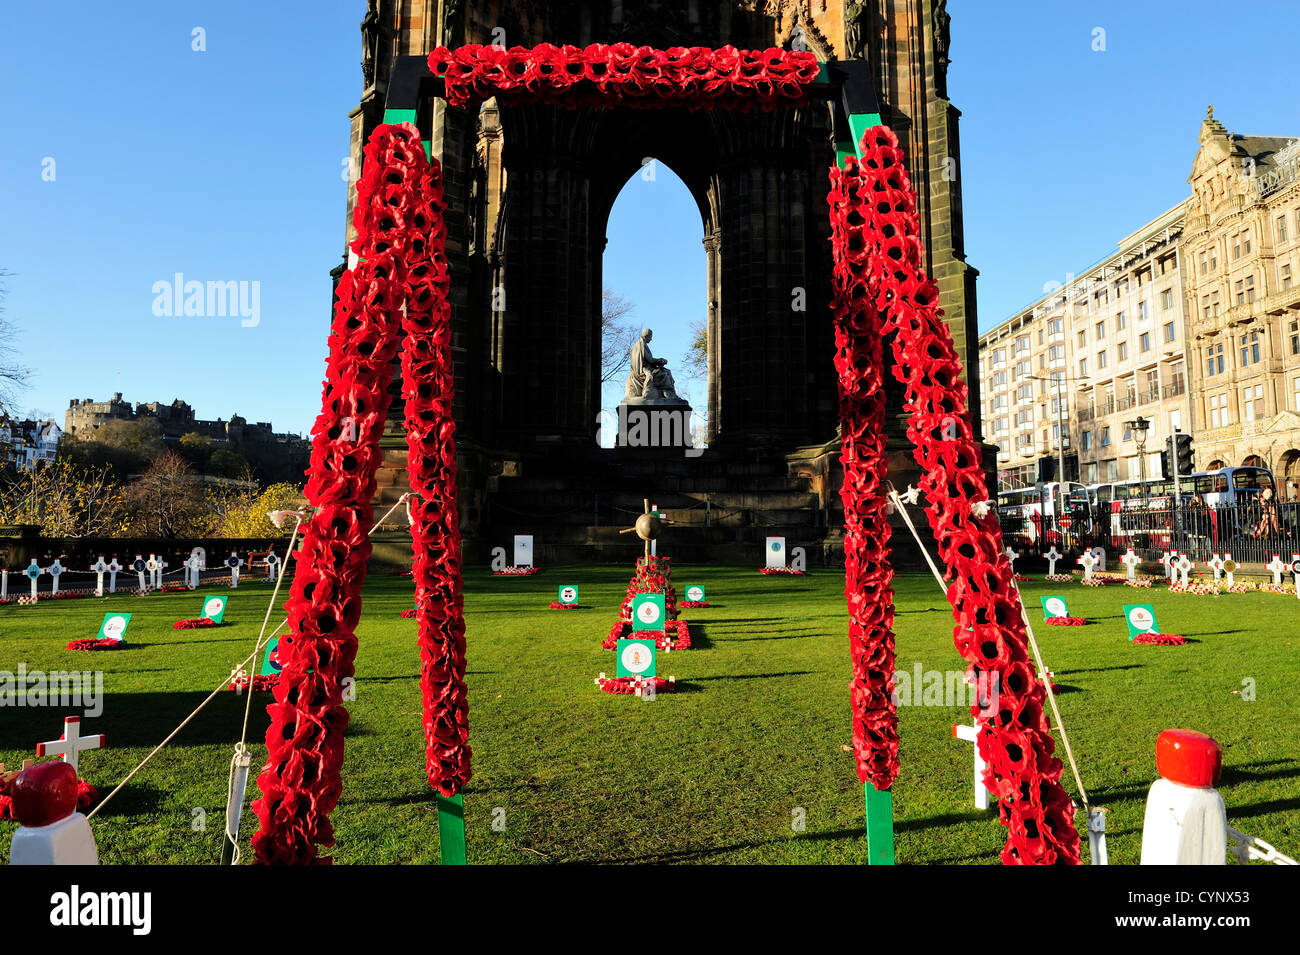 8. November 2012, Edinburgh, Schottland - Garden of Remembrance neben dem Scott Monument in den Princes Street Gardens Stockbild